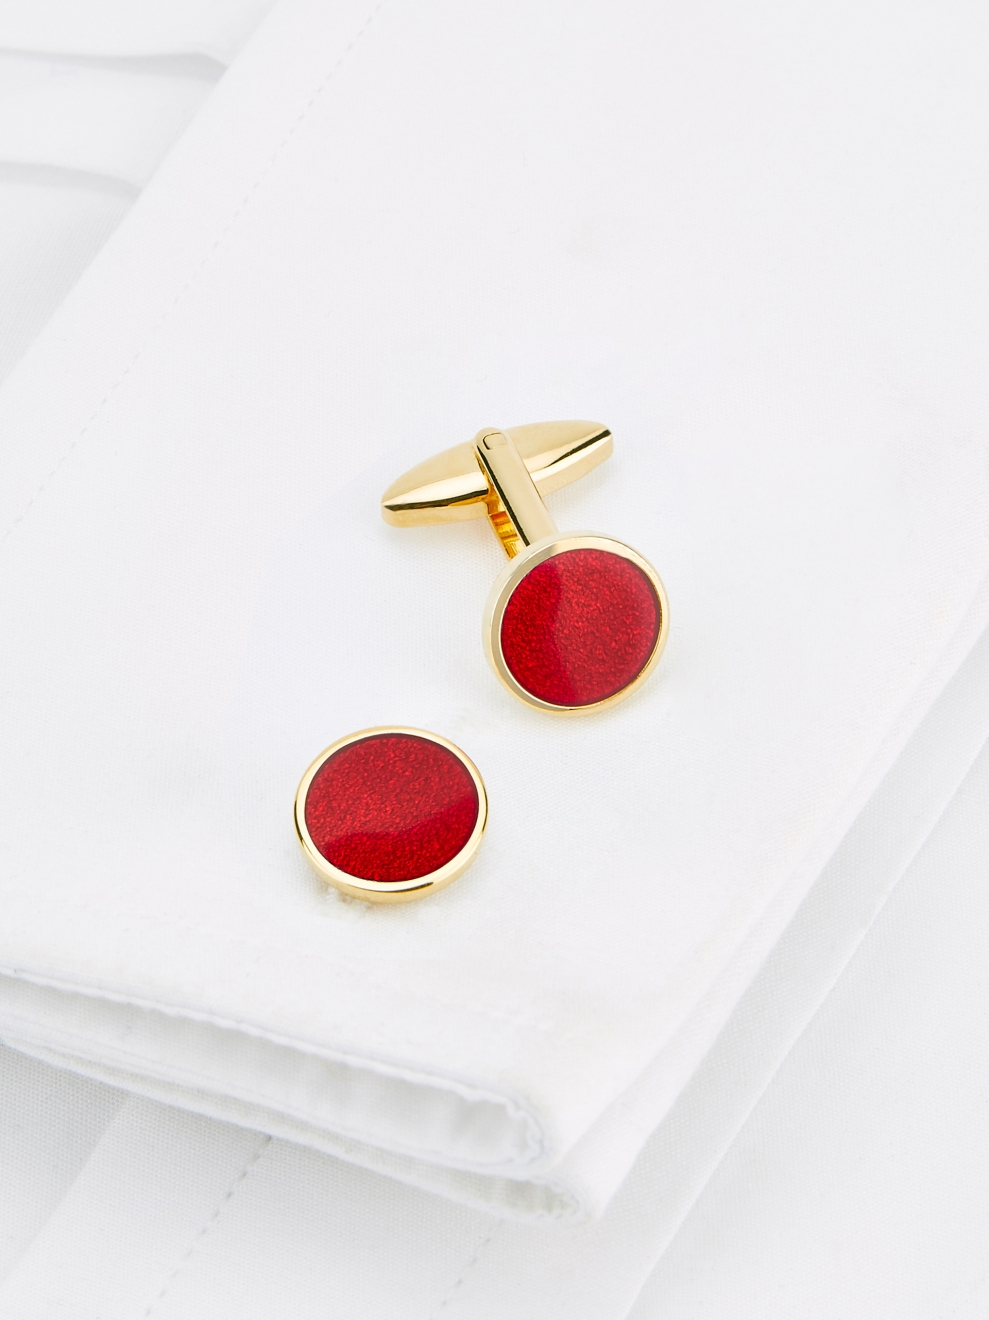 Round Gold Plated Cufflinks With Red Enamel Insert